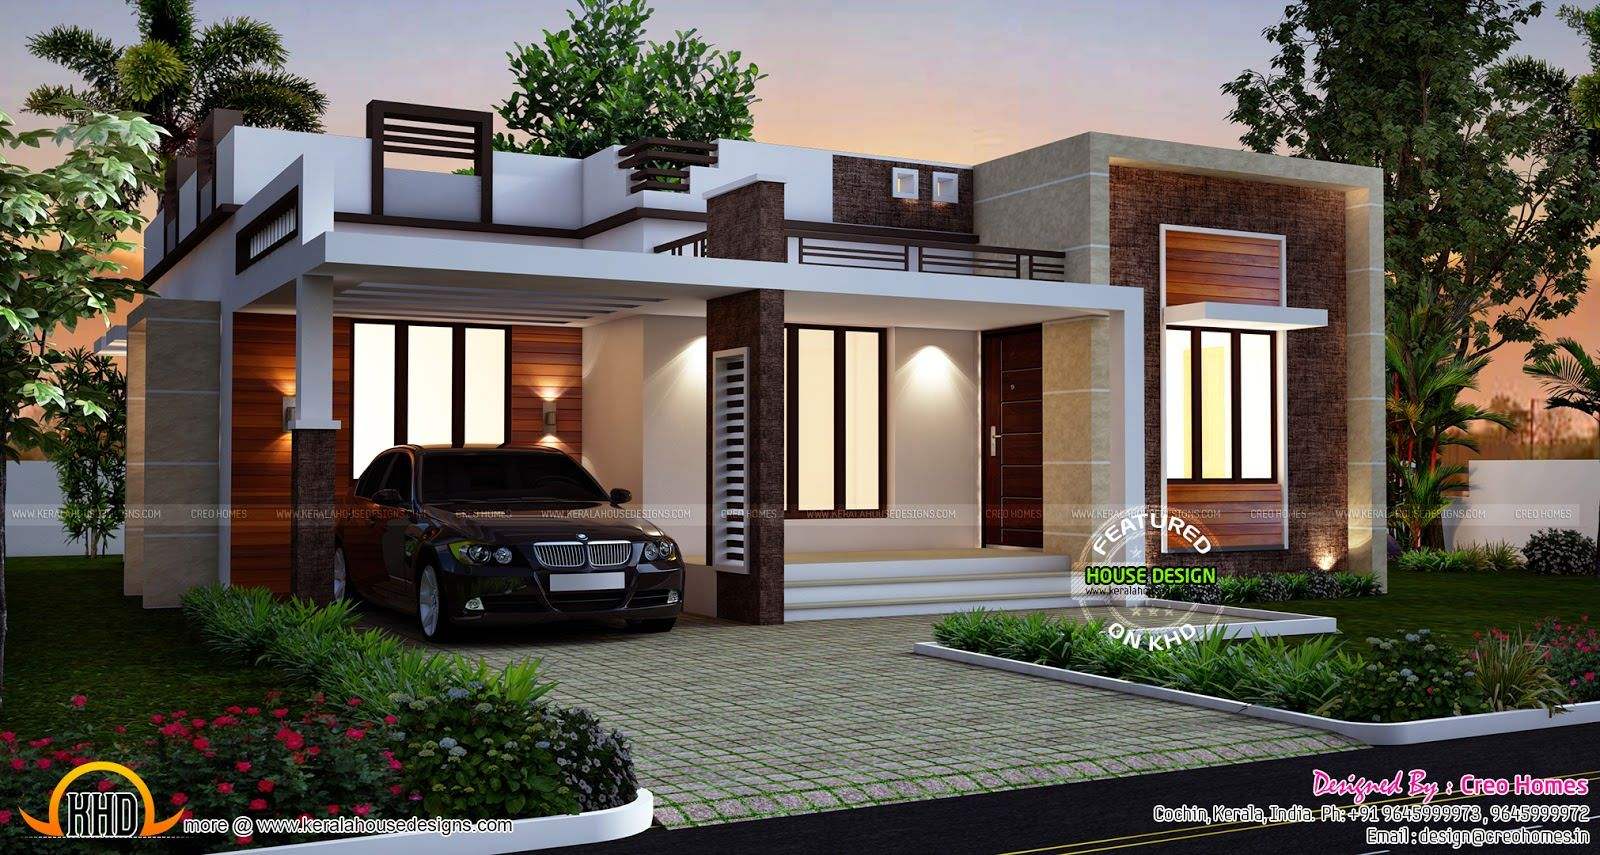 Designs Homes Design Single Story Flat Roof House Plans Inspiration Nice  New Home With Trends Kerala